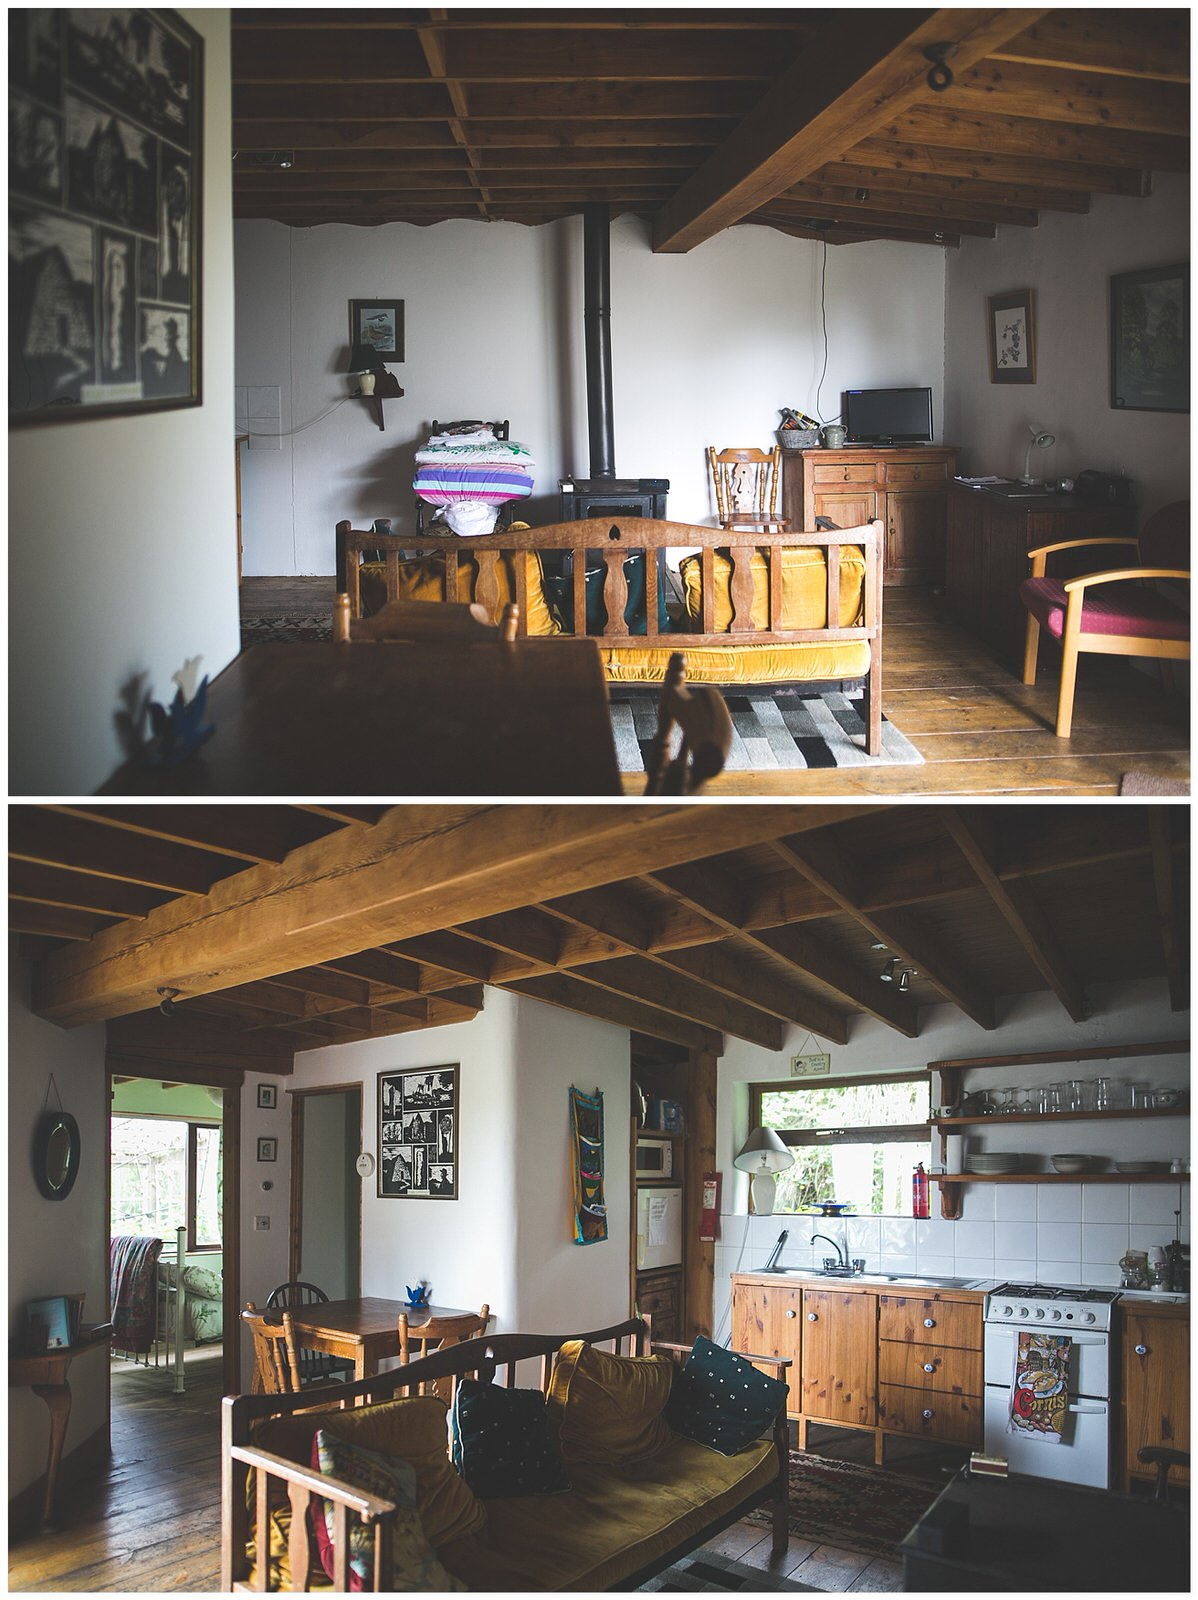 Interior of a Cute wooden cabin in the Irish Countryside